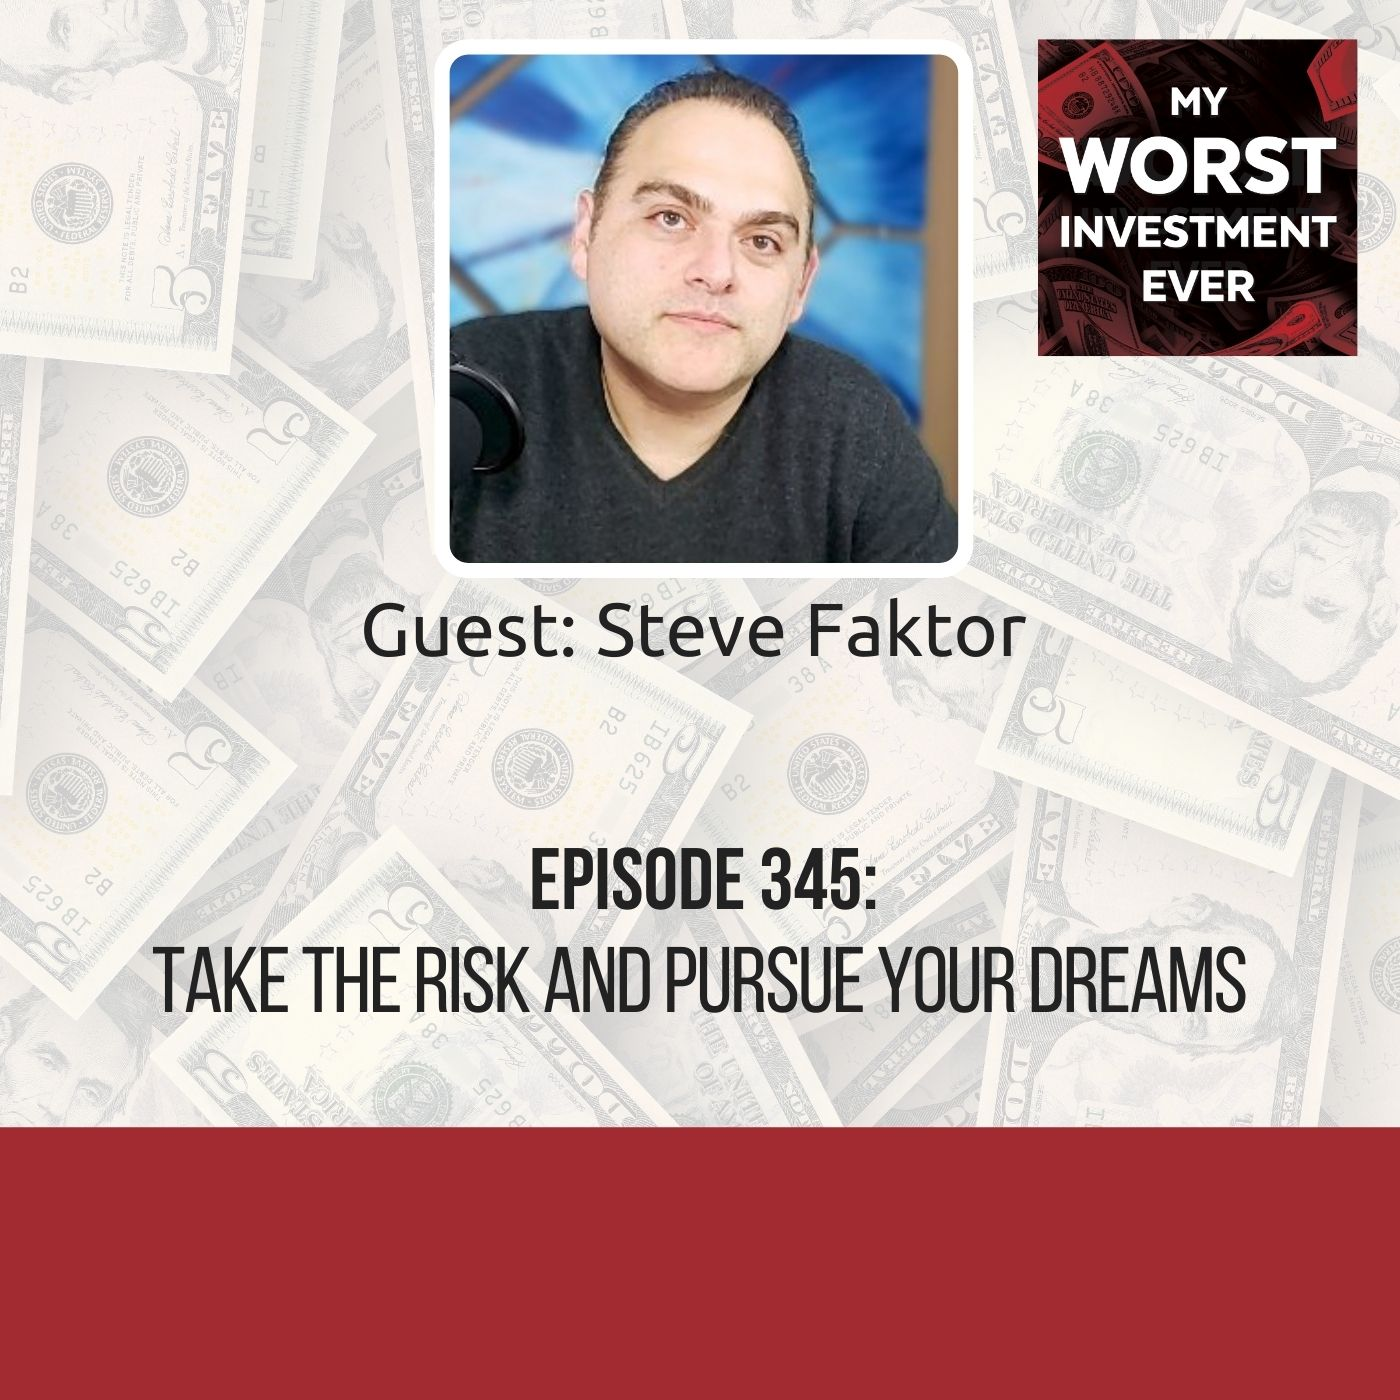 Steve Faktor – Take the Risk and Pursue Your Dreams